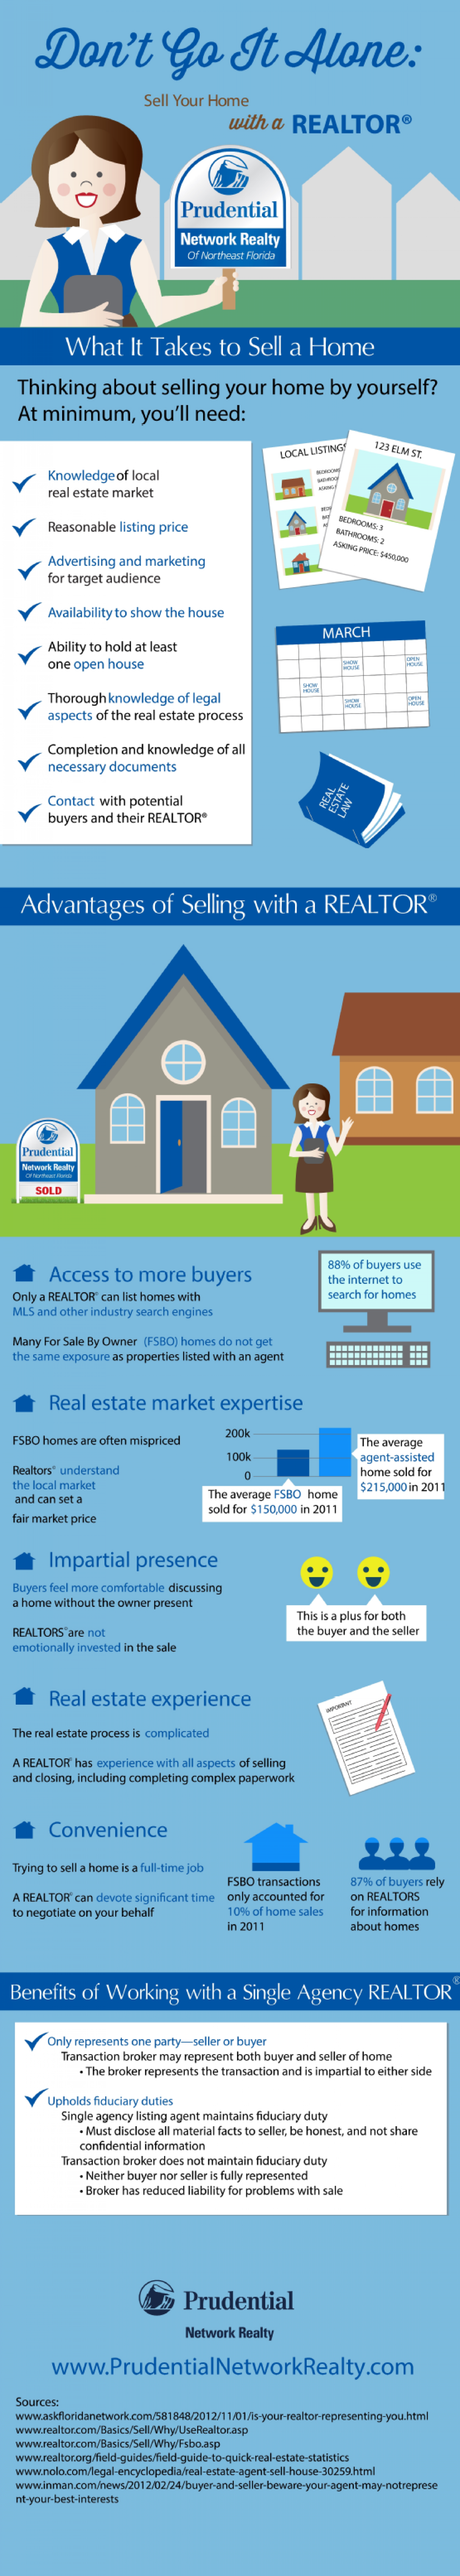 Don't Go It Alone: Sell Your Home With a Realtor Infographic